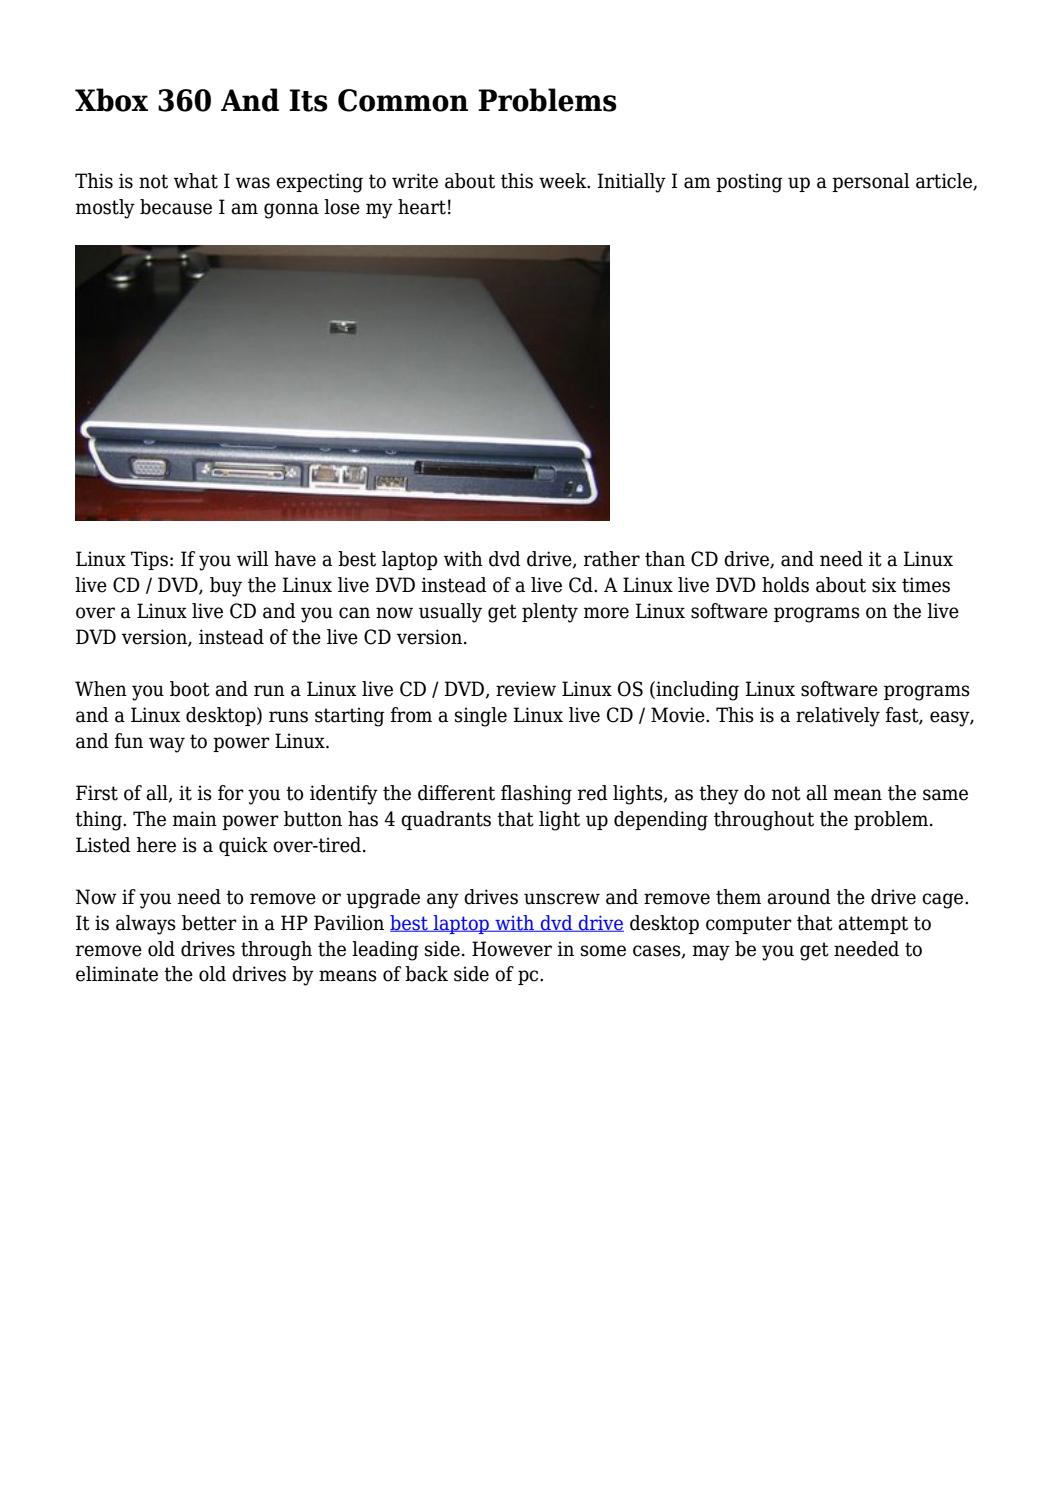 Xbox 360 And Its Common Problems by onegadgetgreat - issuu